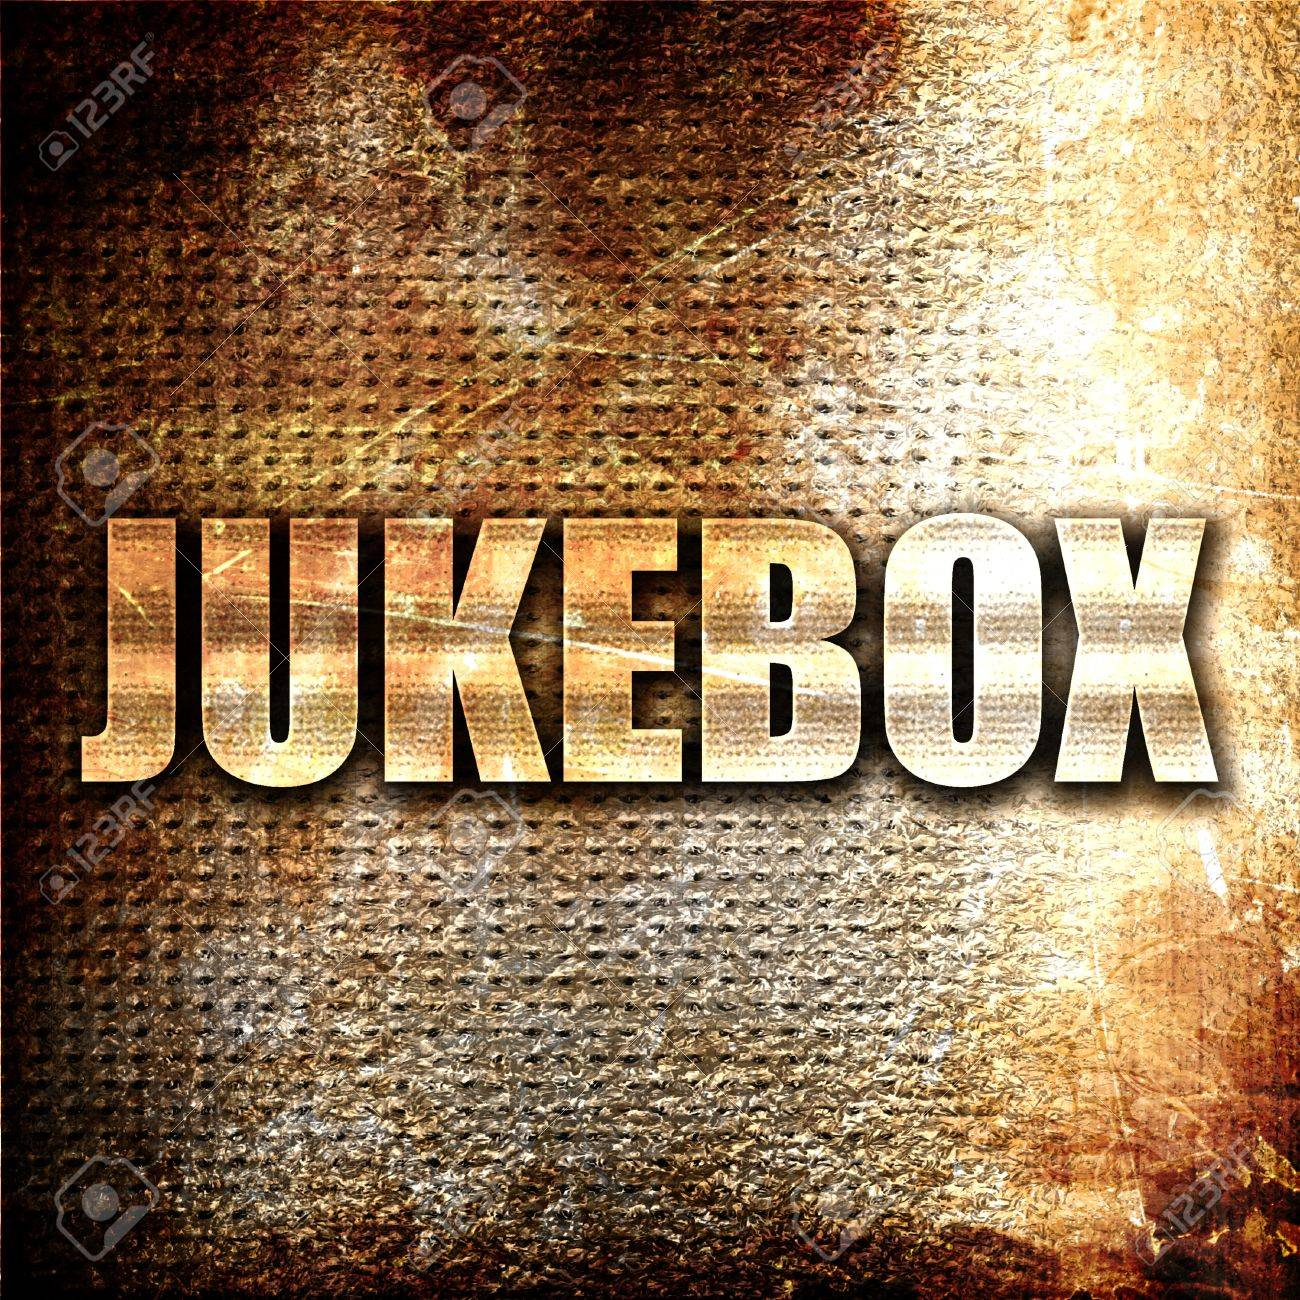 Jukebox 3D Rendering Metal Text On Rust Background Stock Photo 1300x1300